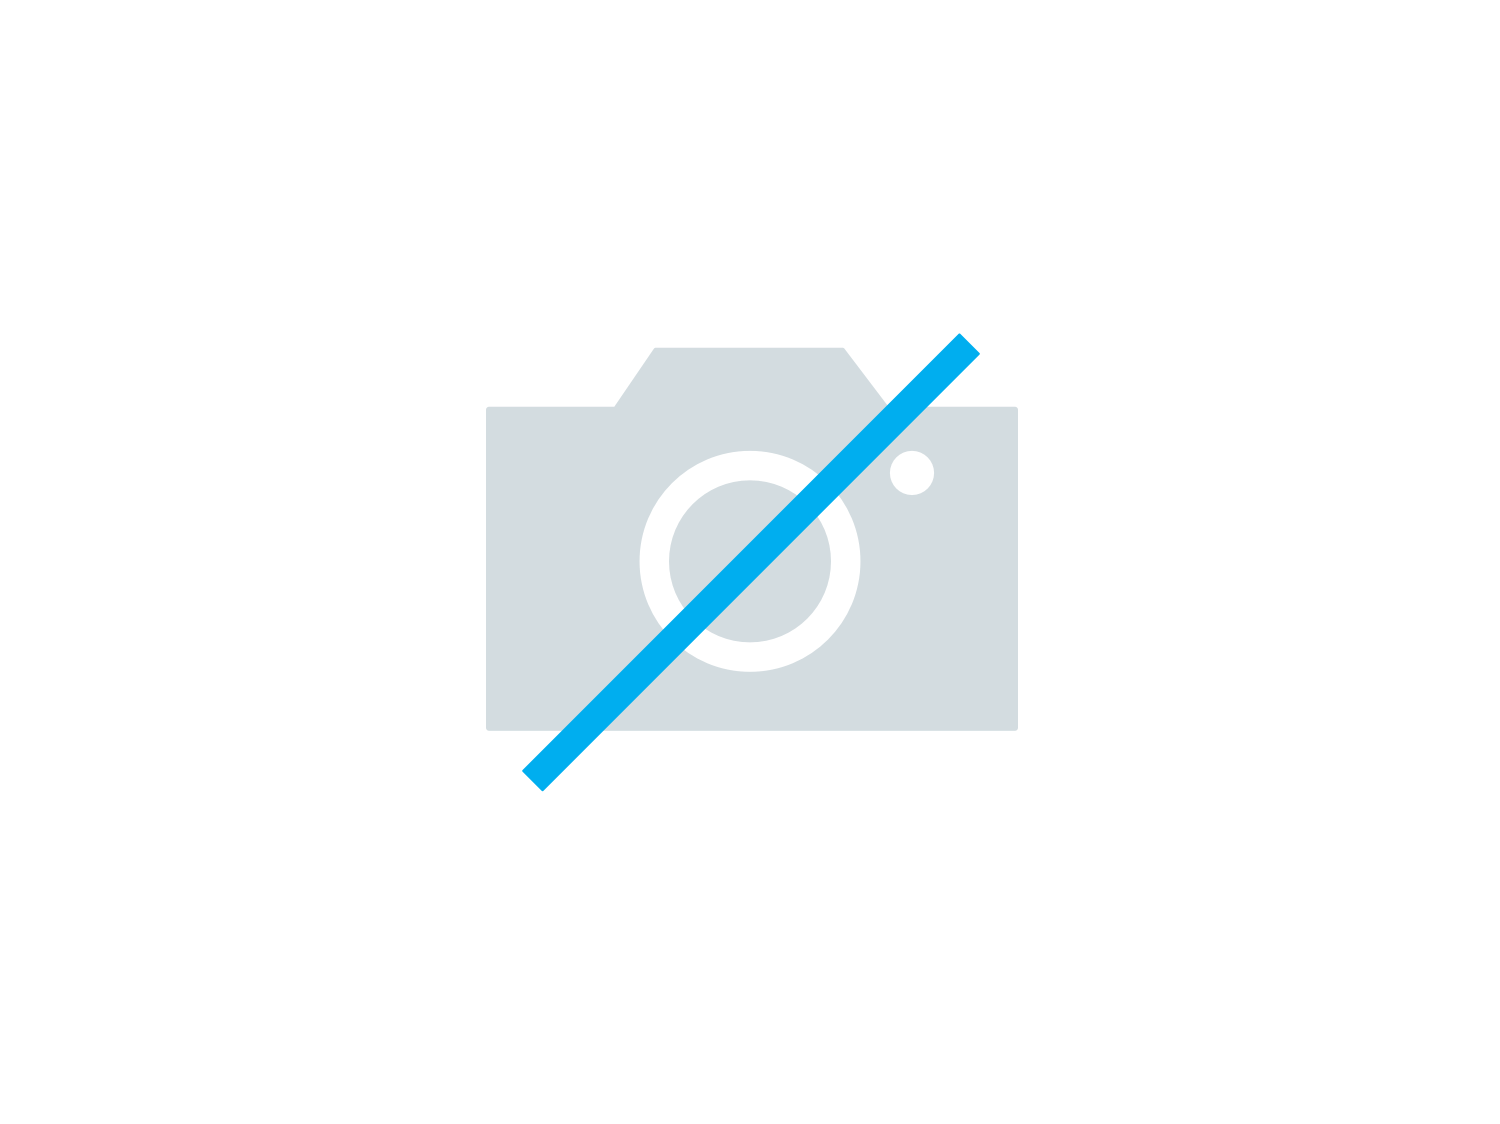 Foto op canvas Black feather 100x140cm